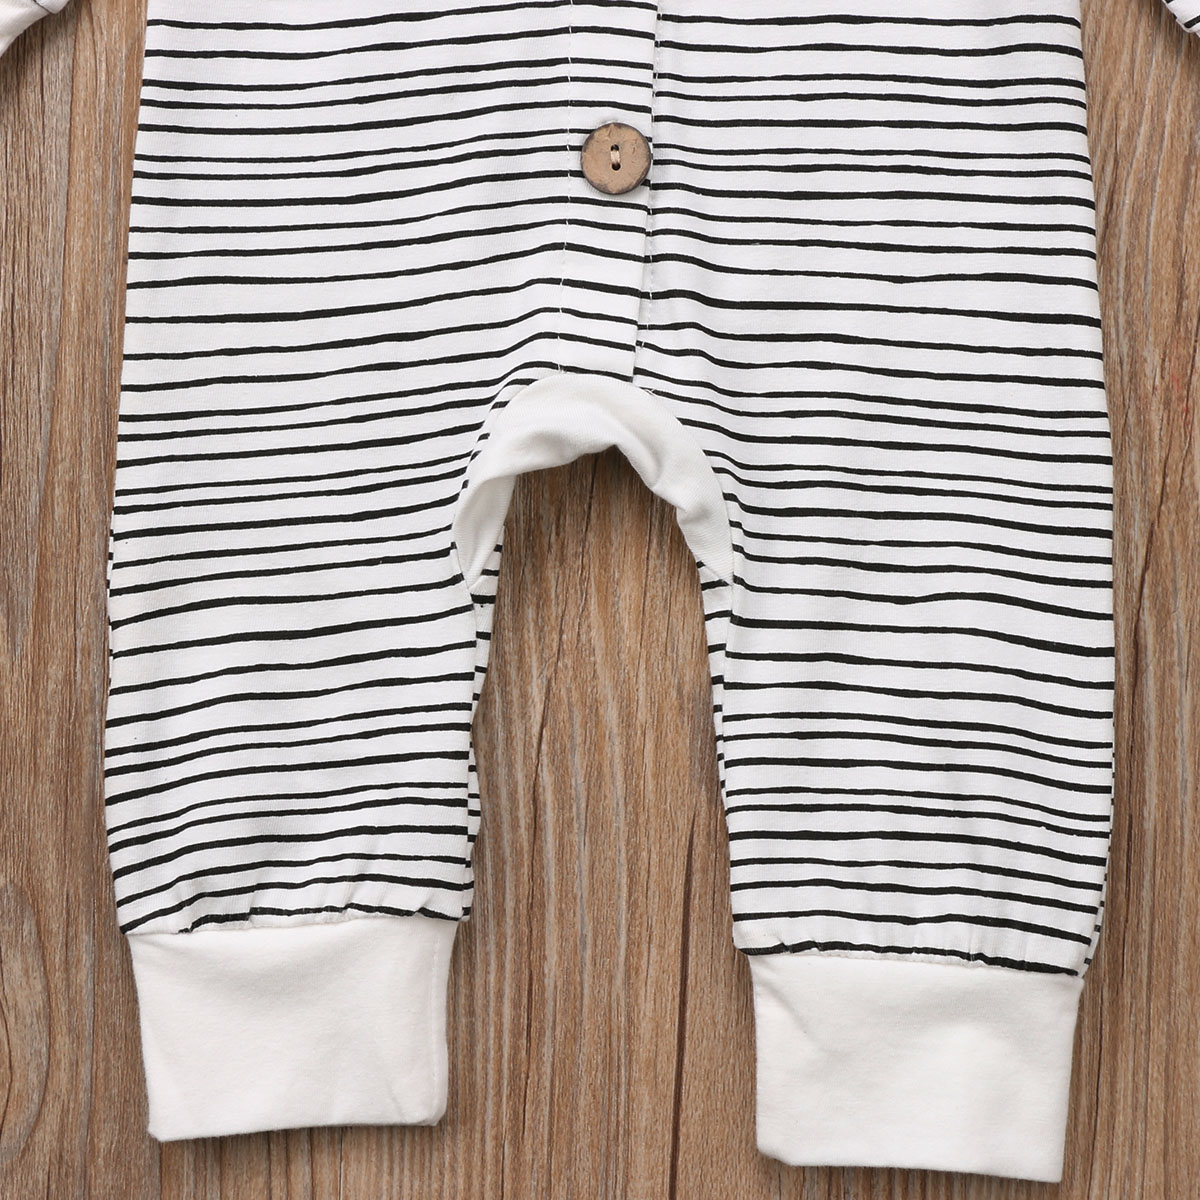 2018 Brand New Toddler Newborn Baby Boy Girl Warm Infant Romper Striped Jumpsuit Hooded Clothes Long Sleeve Outfit